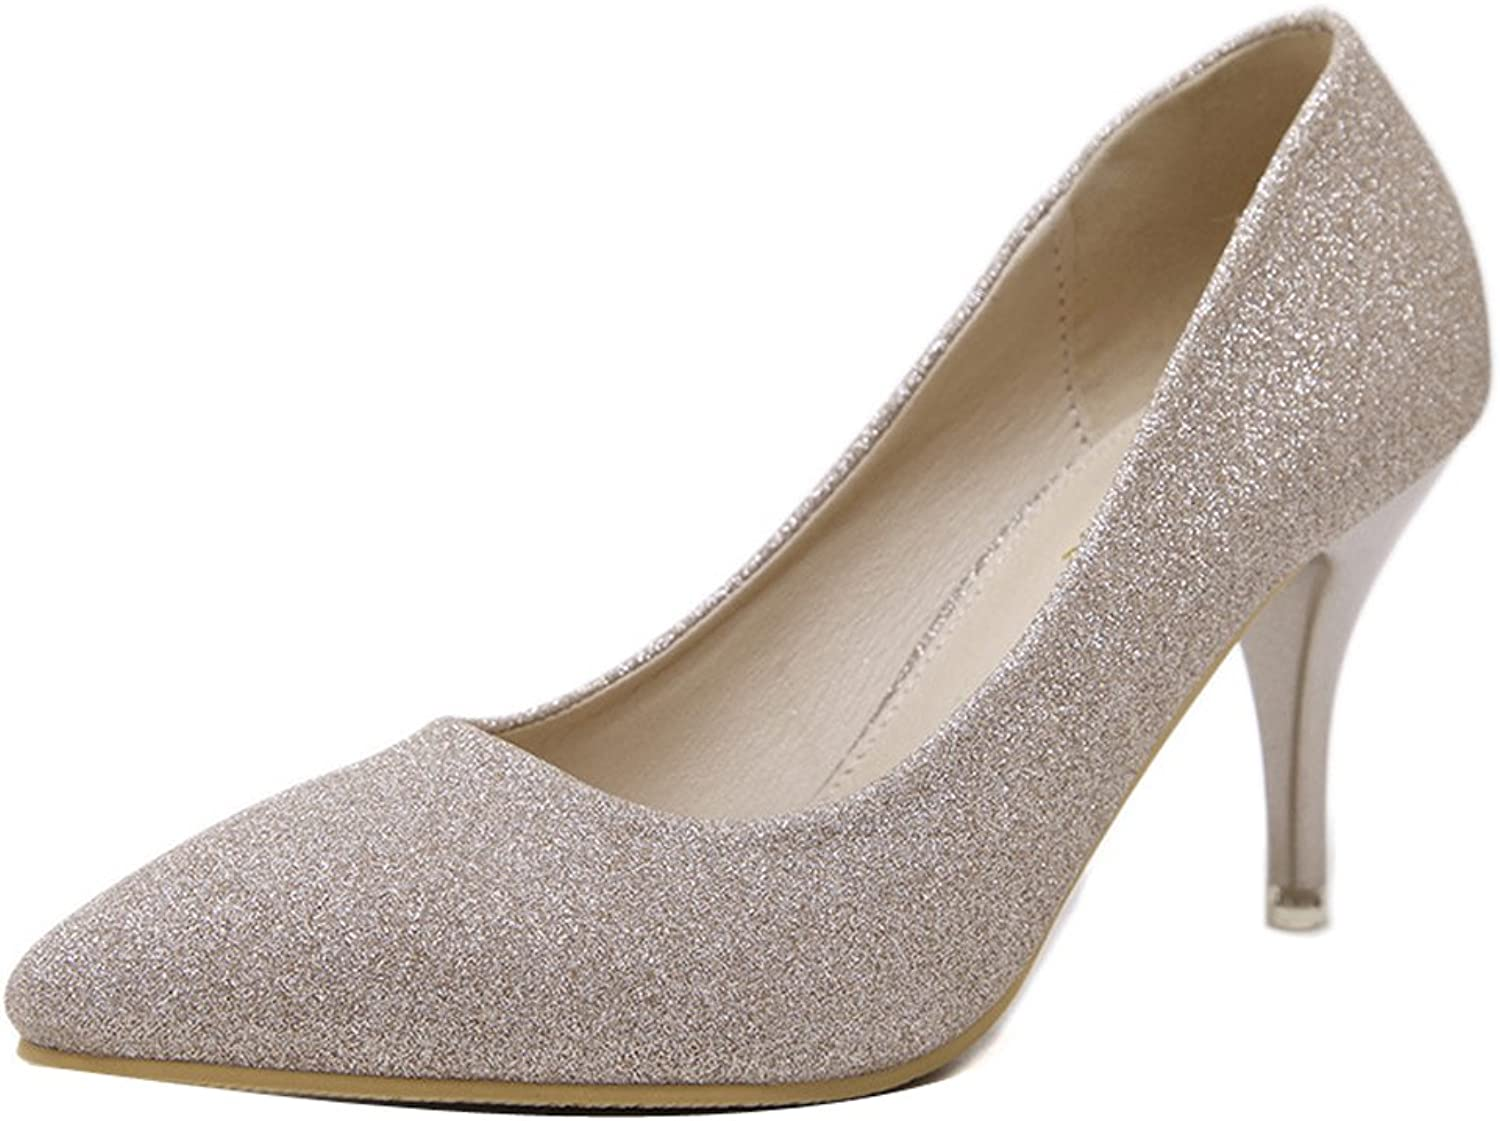 Ladola Womens Bridal Solid Lights High-Heels Pointed-Toe Urethane Pumps shoes